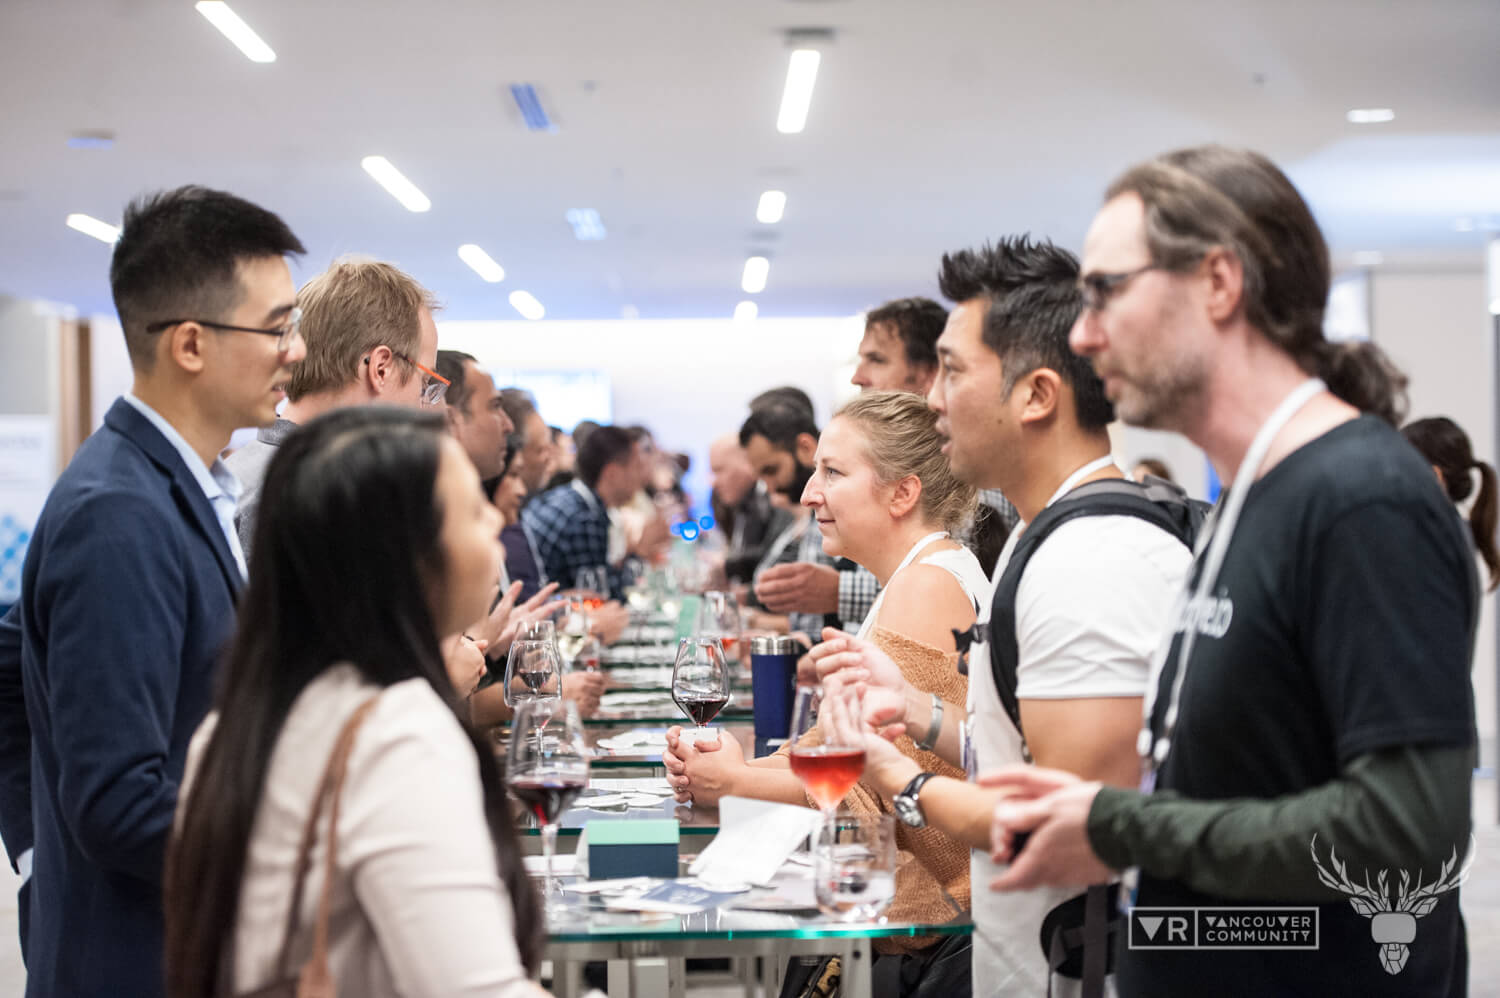 Speed dating - This is the ultimate networking event, like nothing you have ever seen before. Get out your business cards and get ready... you only have 3 minutes to talk to the person across from you, then you move along to the next...you have 50 chances to meet your match!